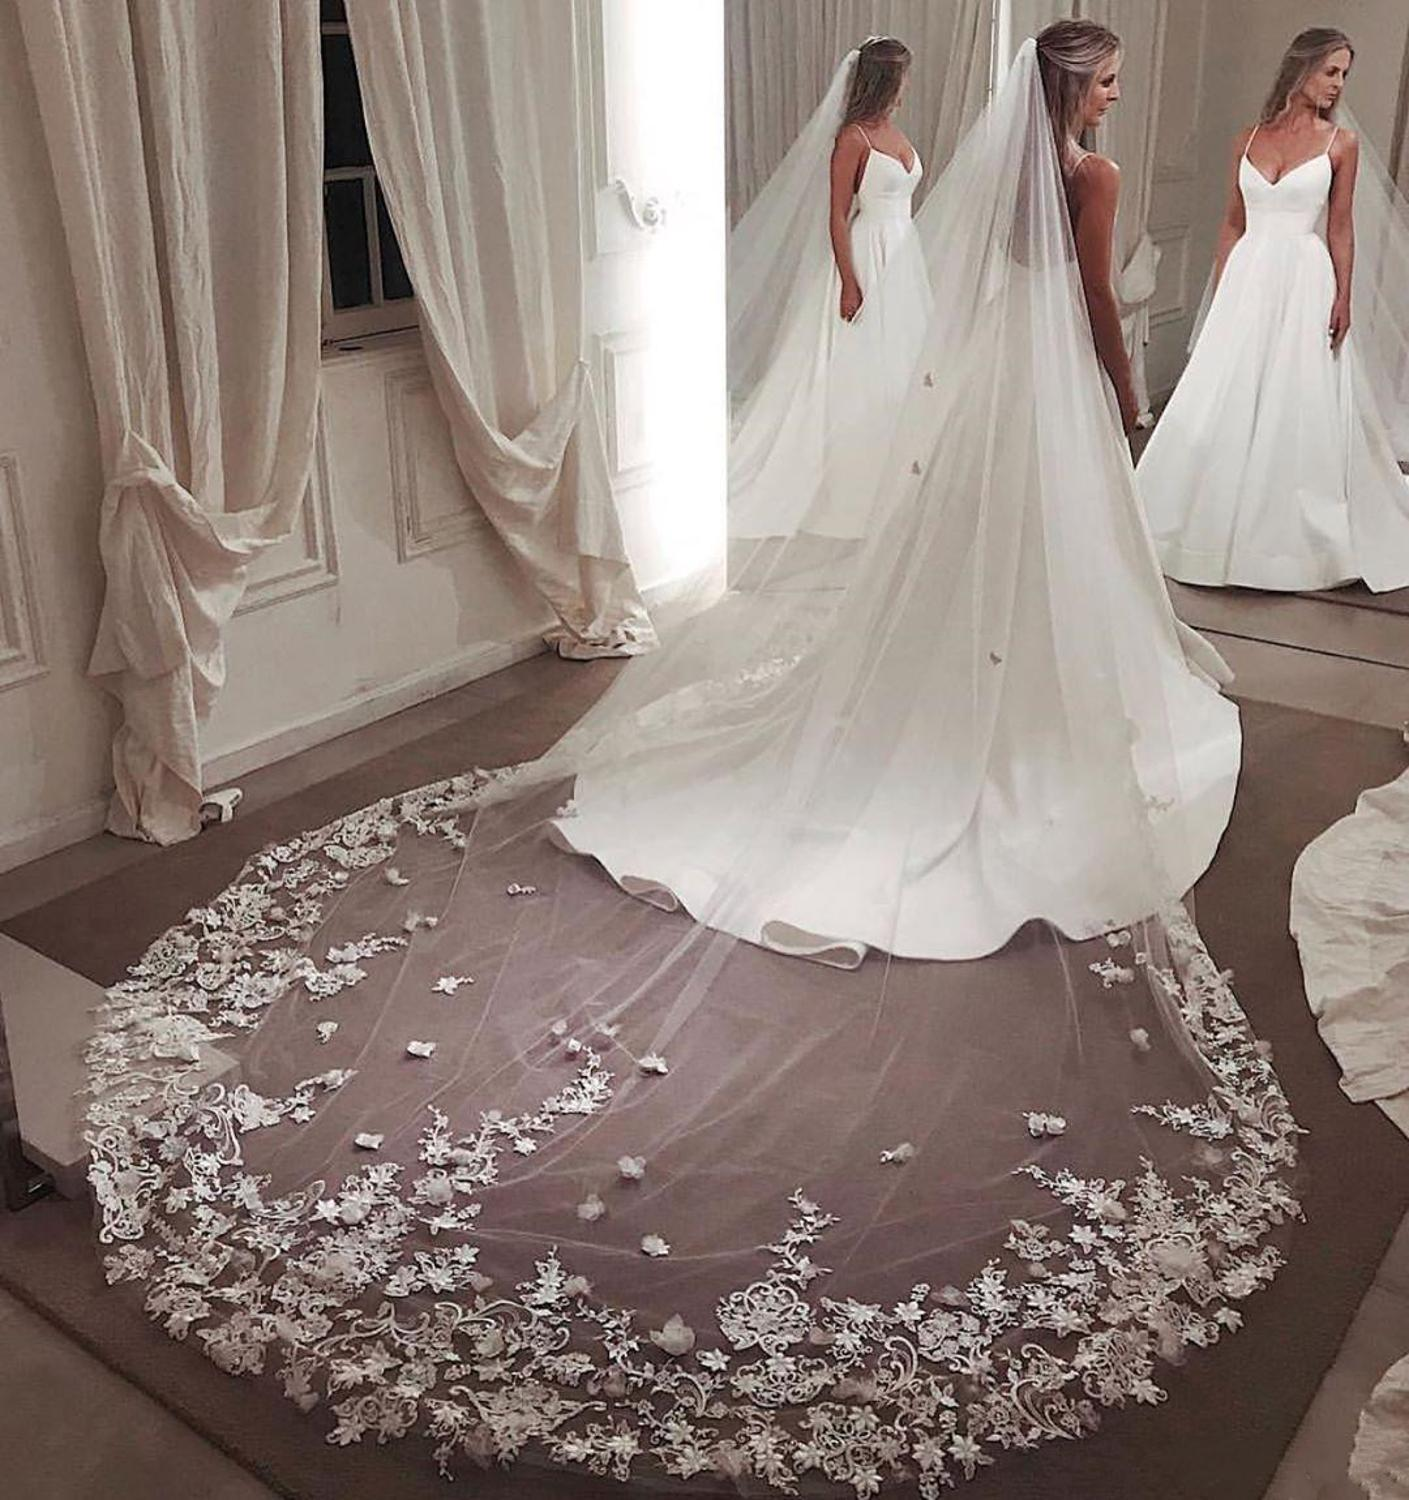 Wedding Cathedral Veil Lace Edge Floral Bride/'s Stylish Veils One-layer Clothing